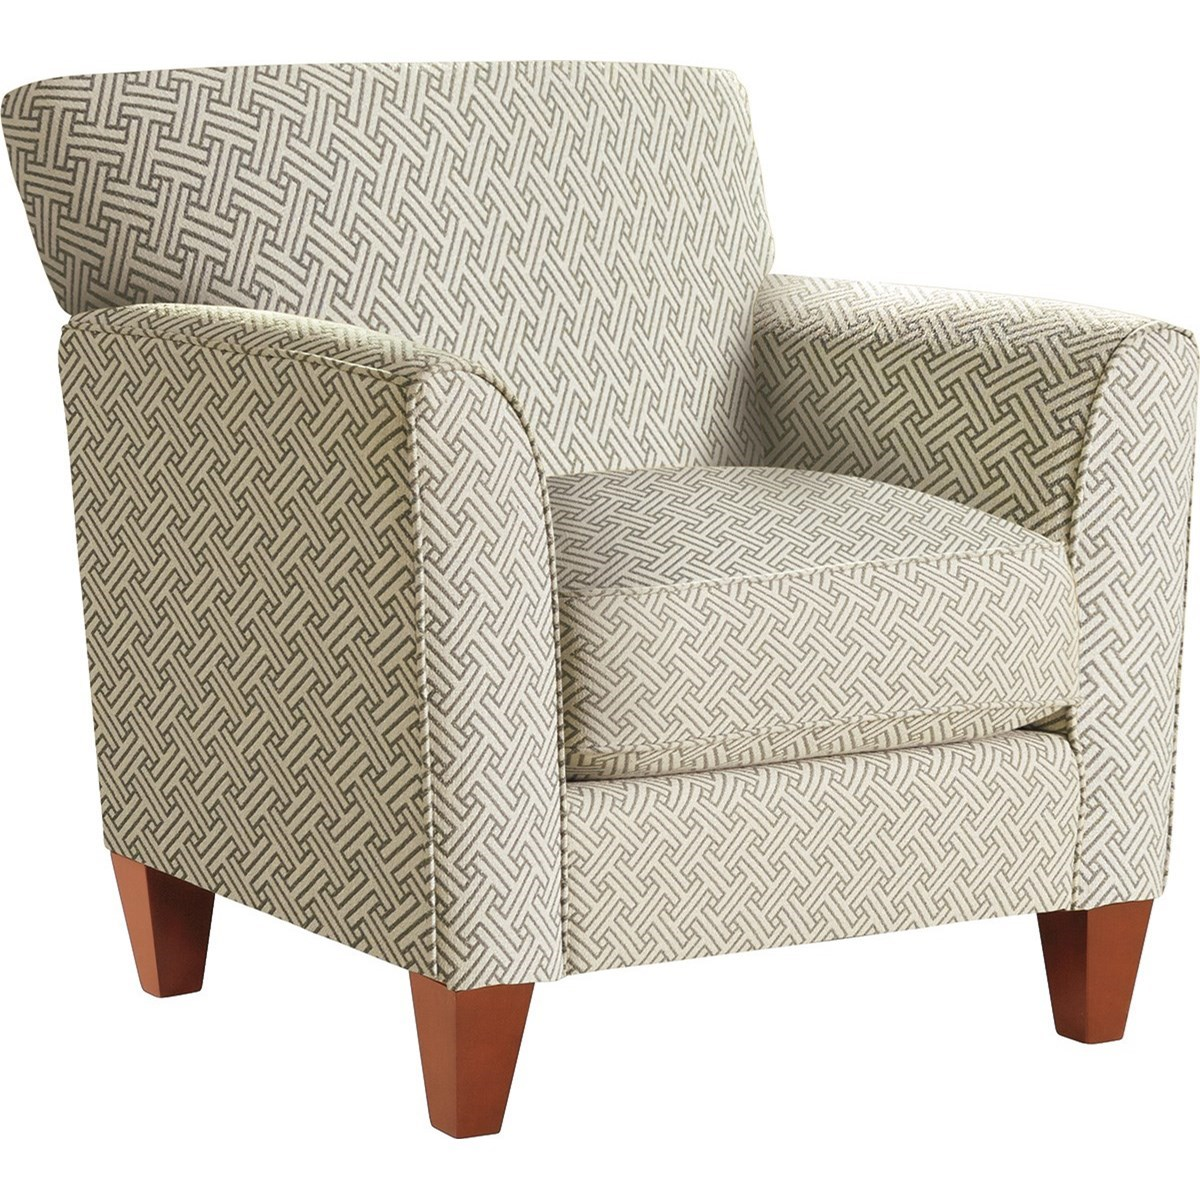 Allegra Stationary Chair with Flared Arms